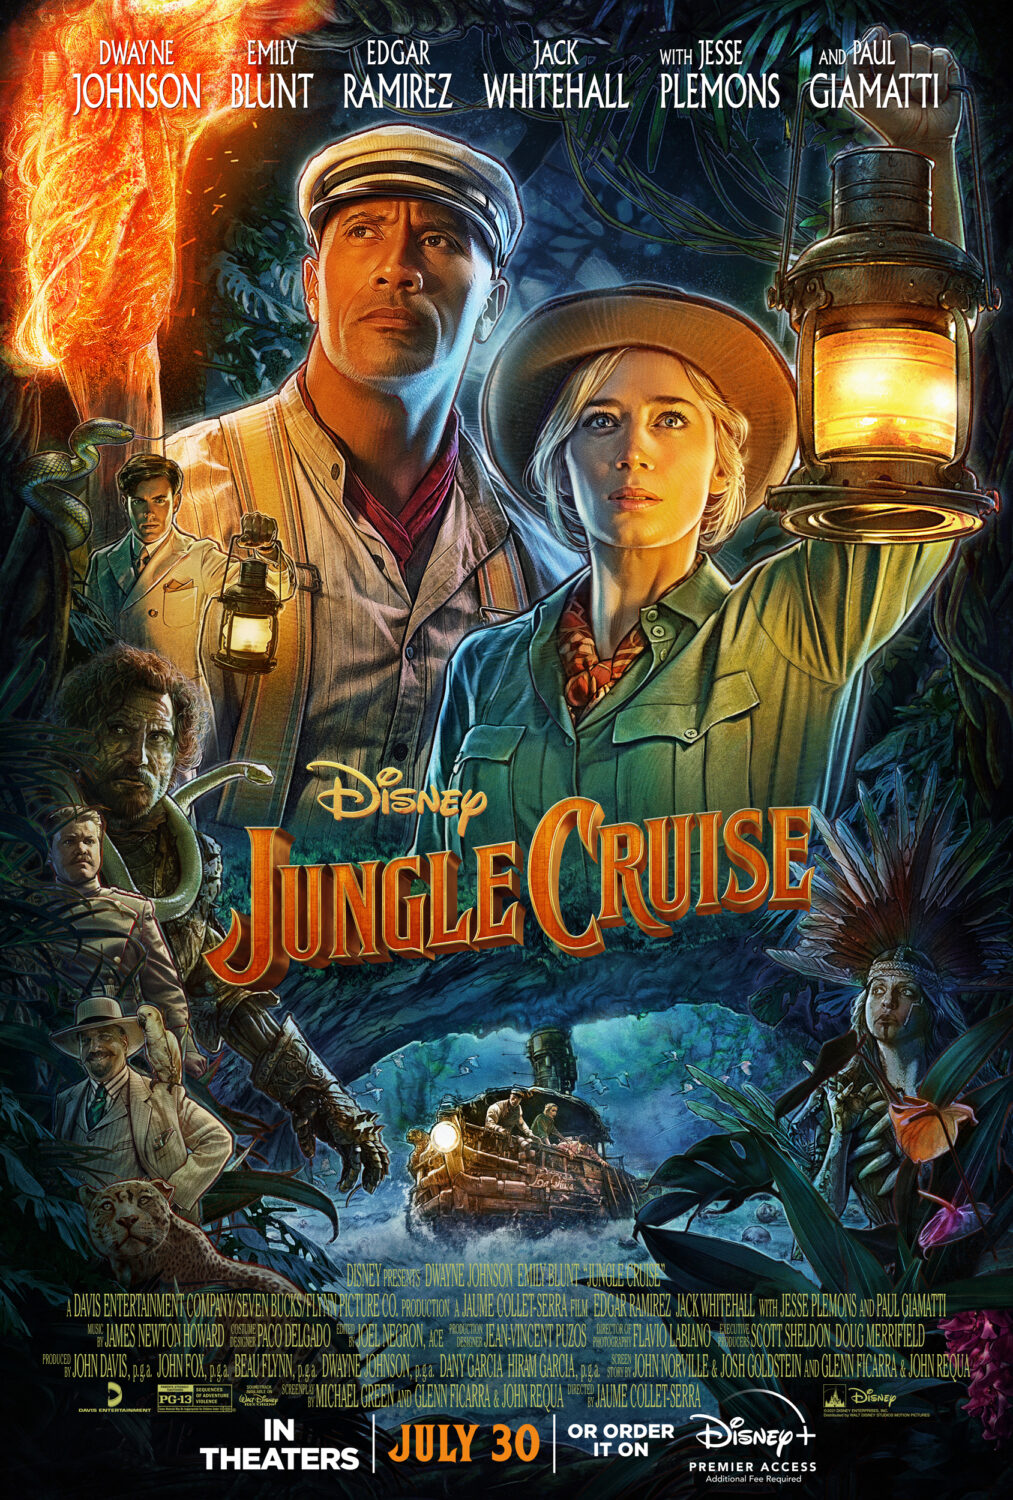 Disney's Jungle Cruise is rated PG-13……..but is it scary? Can kids watch it? What ages? This no spoilers Jungle Cruise movie review will help you decide!